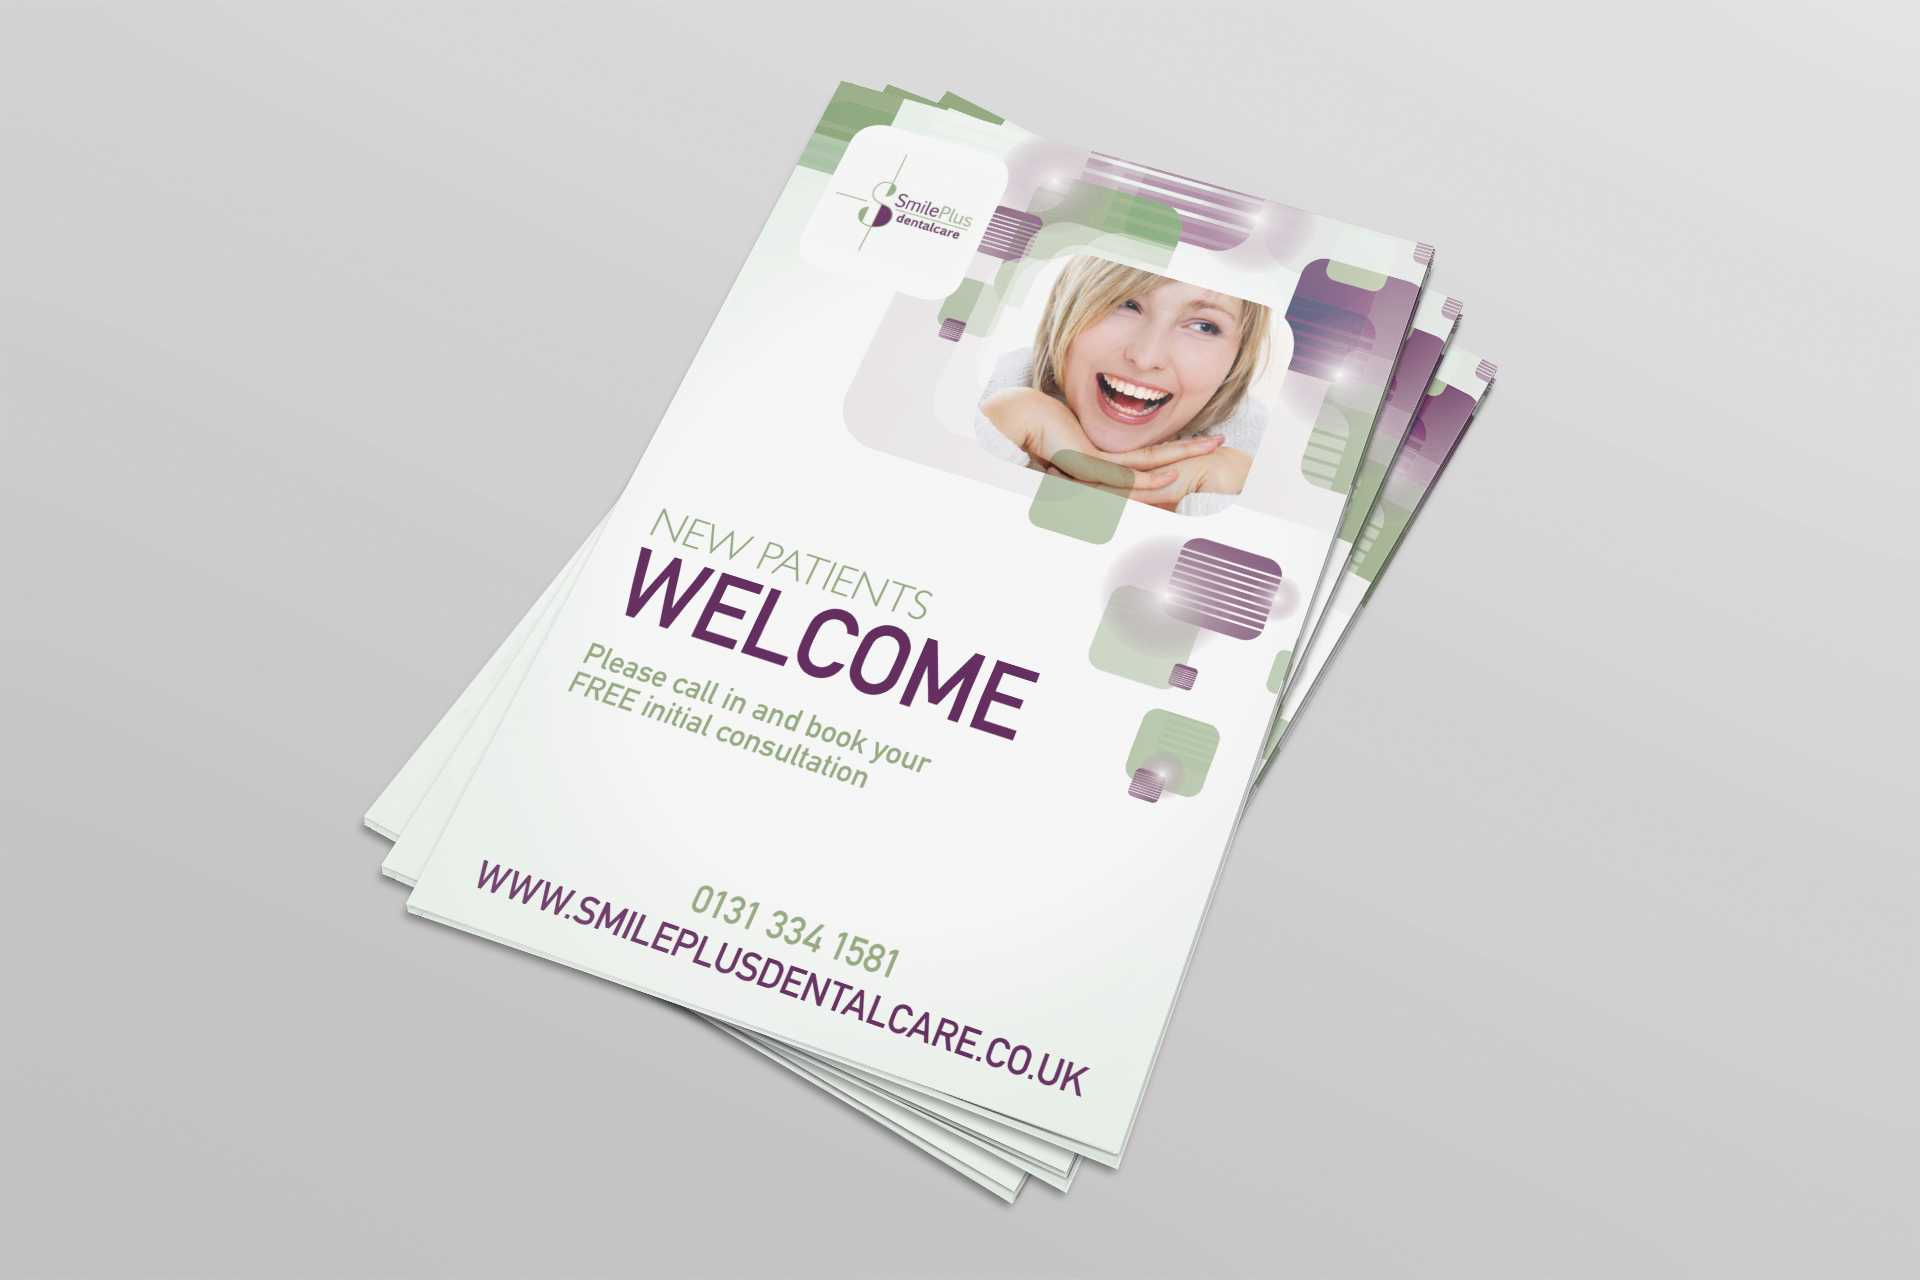 Flyer-design-Glasgow-Edinburgh-West-Lothian-24.jpg